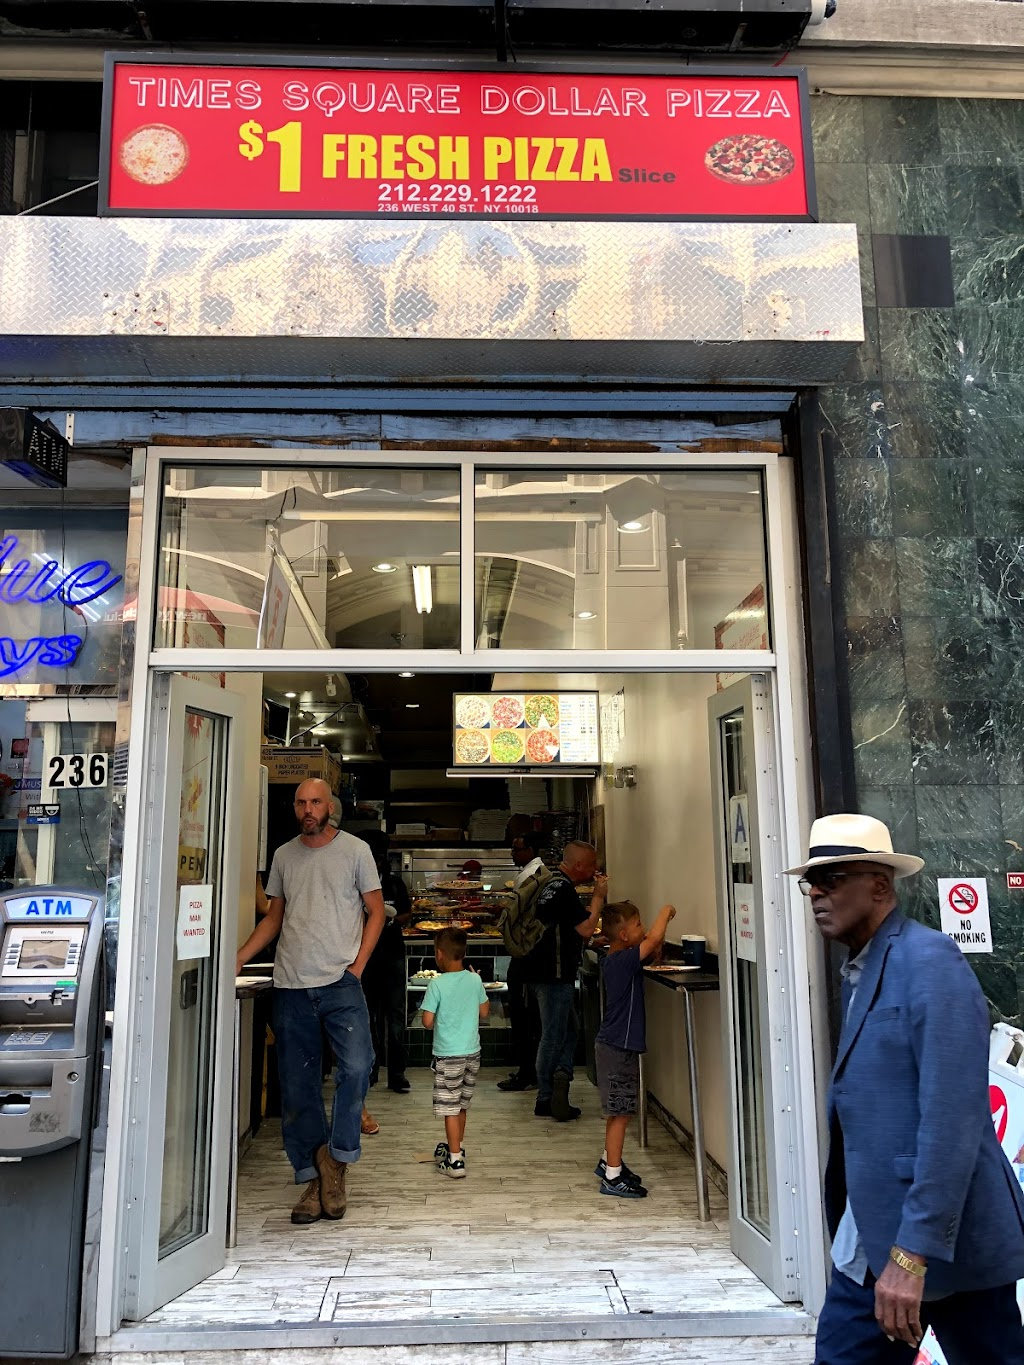 New Times Square Pizza LLC | meal delivery | 236 W 40th St, New York, NY 10018, USA | 2122291222 OR +1 212-229-1222